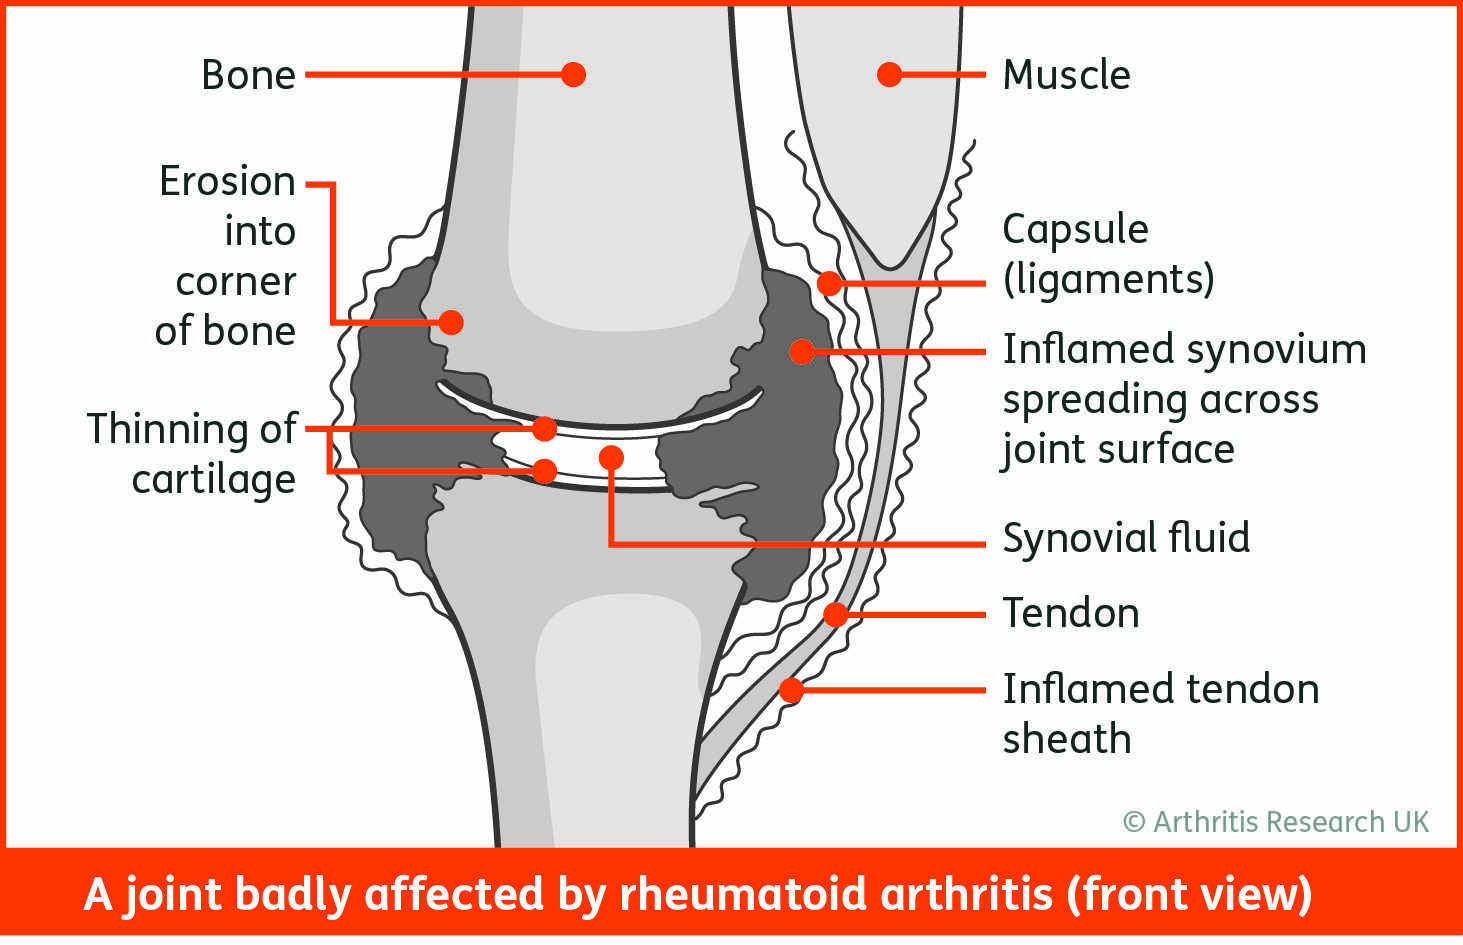 The Stages of Rheumatoid Arthritis